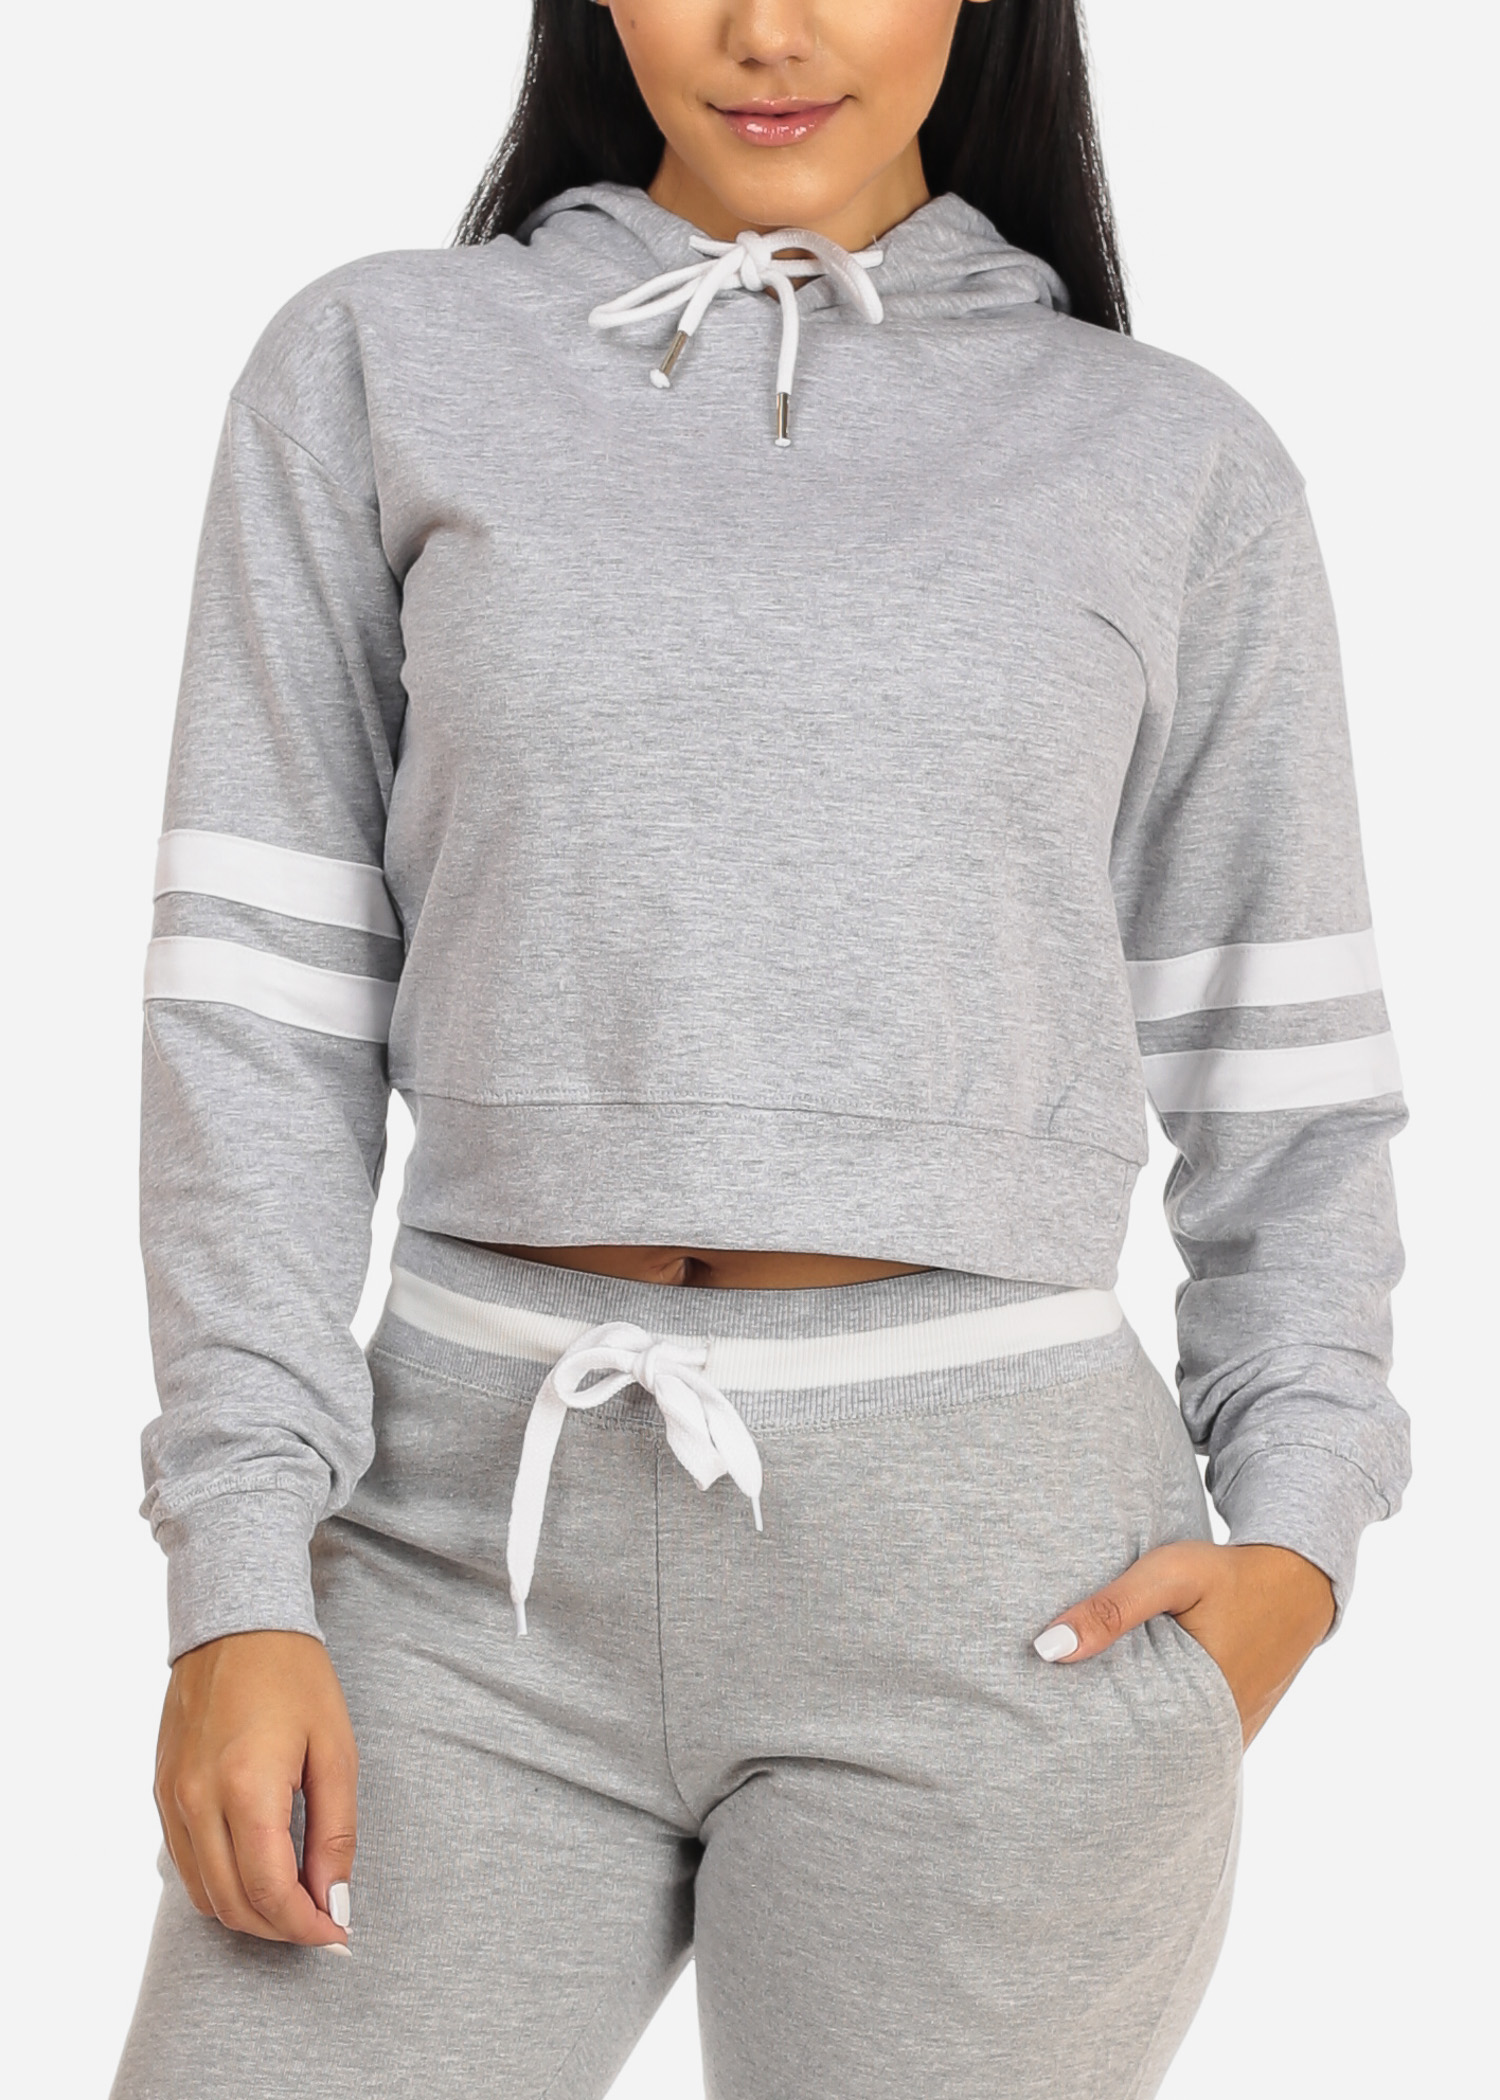 Womens Juniors Cotton Casual Activewear Sport Long Sleeve Solid Grey Cropped Pullover Hoodie Sweatshirt 10475S